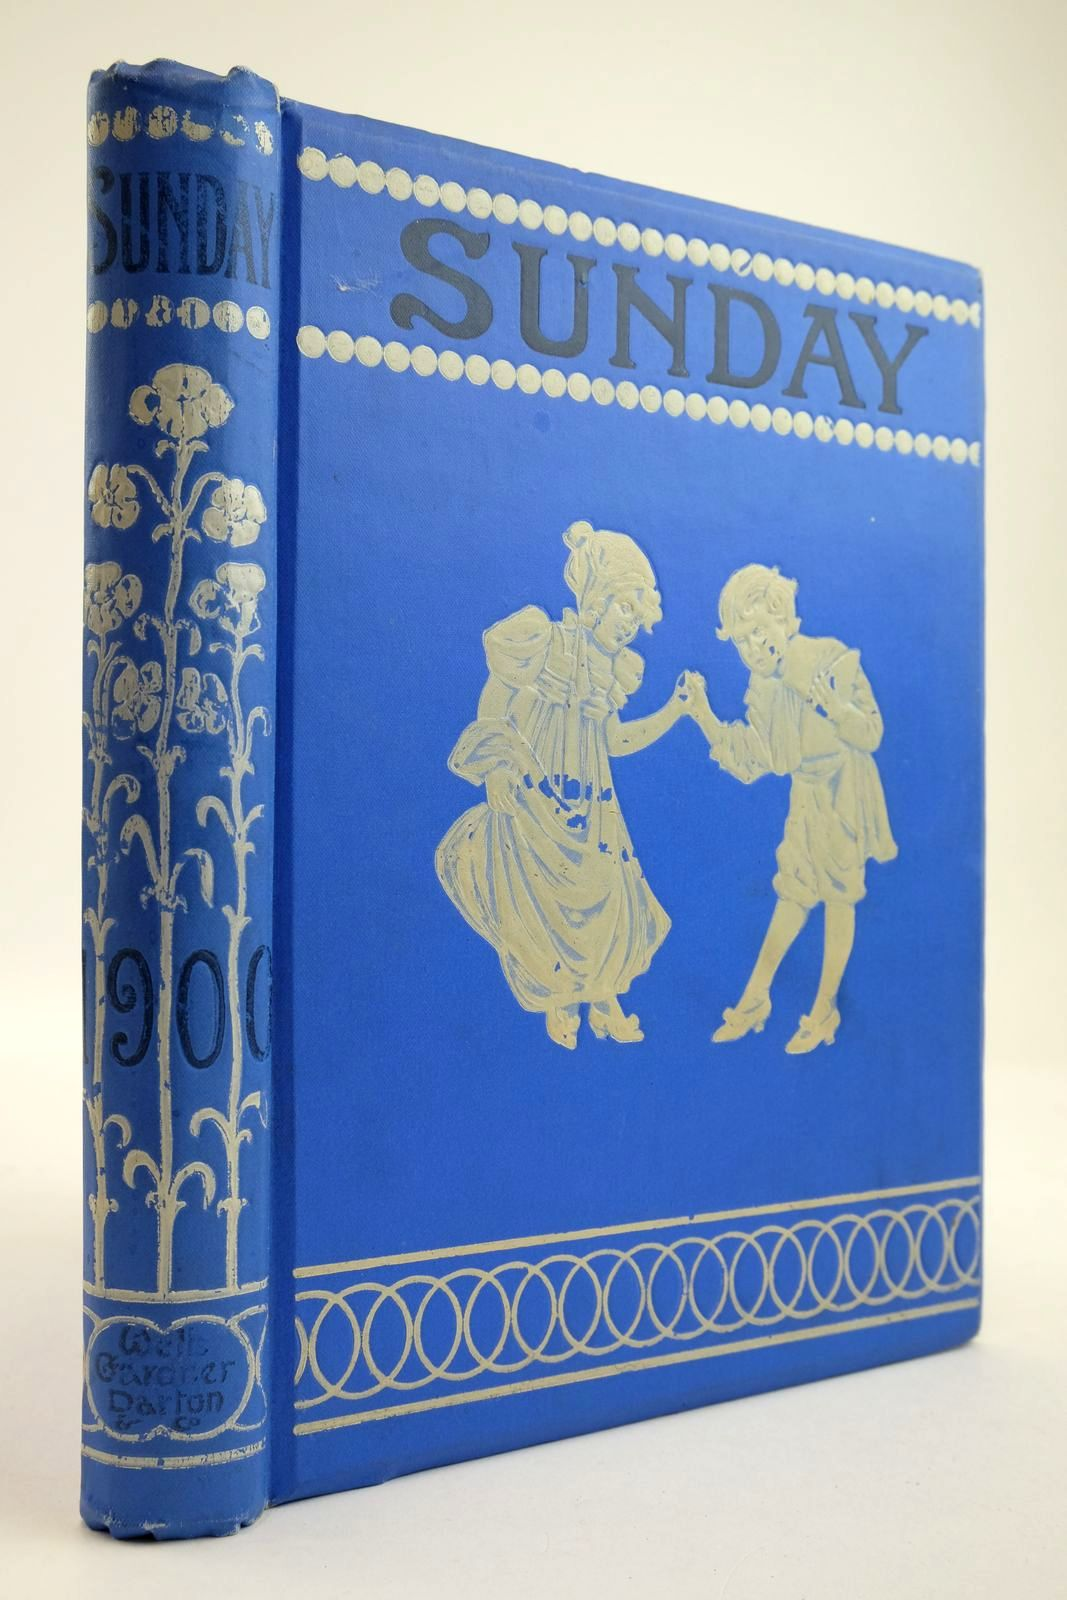 Photo of SUNDAY READING FOR THE YOUNG 1900 illustrated by Browne, Gordon Walker, A.G. Groome, W.H.C. Miles, Helen Rhead, George Woolliscroft Robinson, Charles et al.,  published by Wells Gardner, Darton & Co. (STOCK CODE: 2133964)  for sale by Stella & Rose's Books